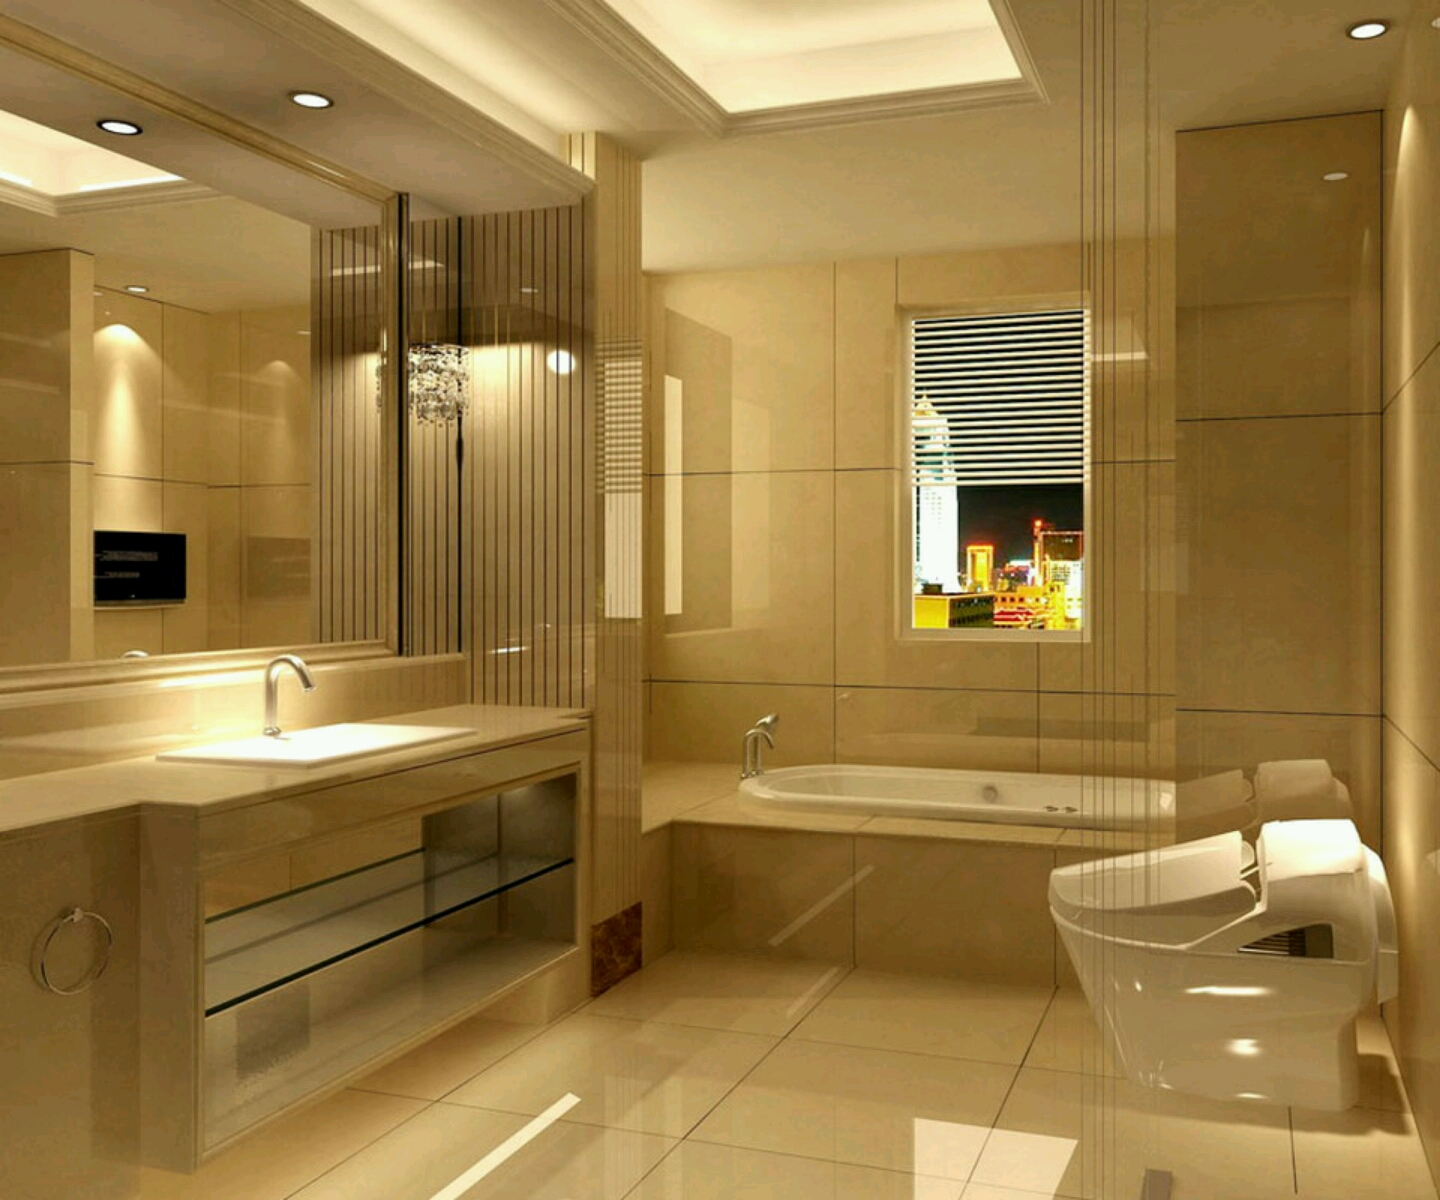 Modern bathrooms setting ideas furniture gallery for Bathroom designs gallery